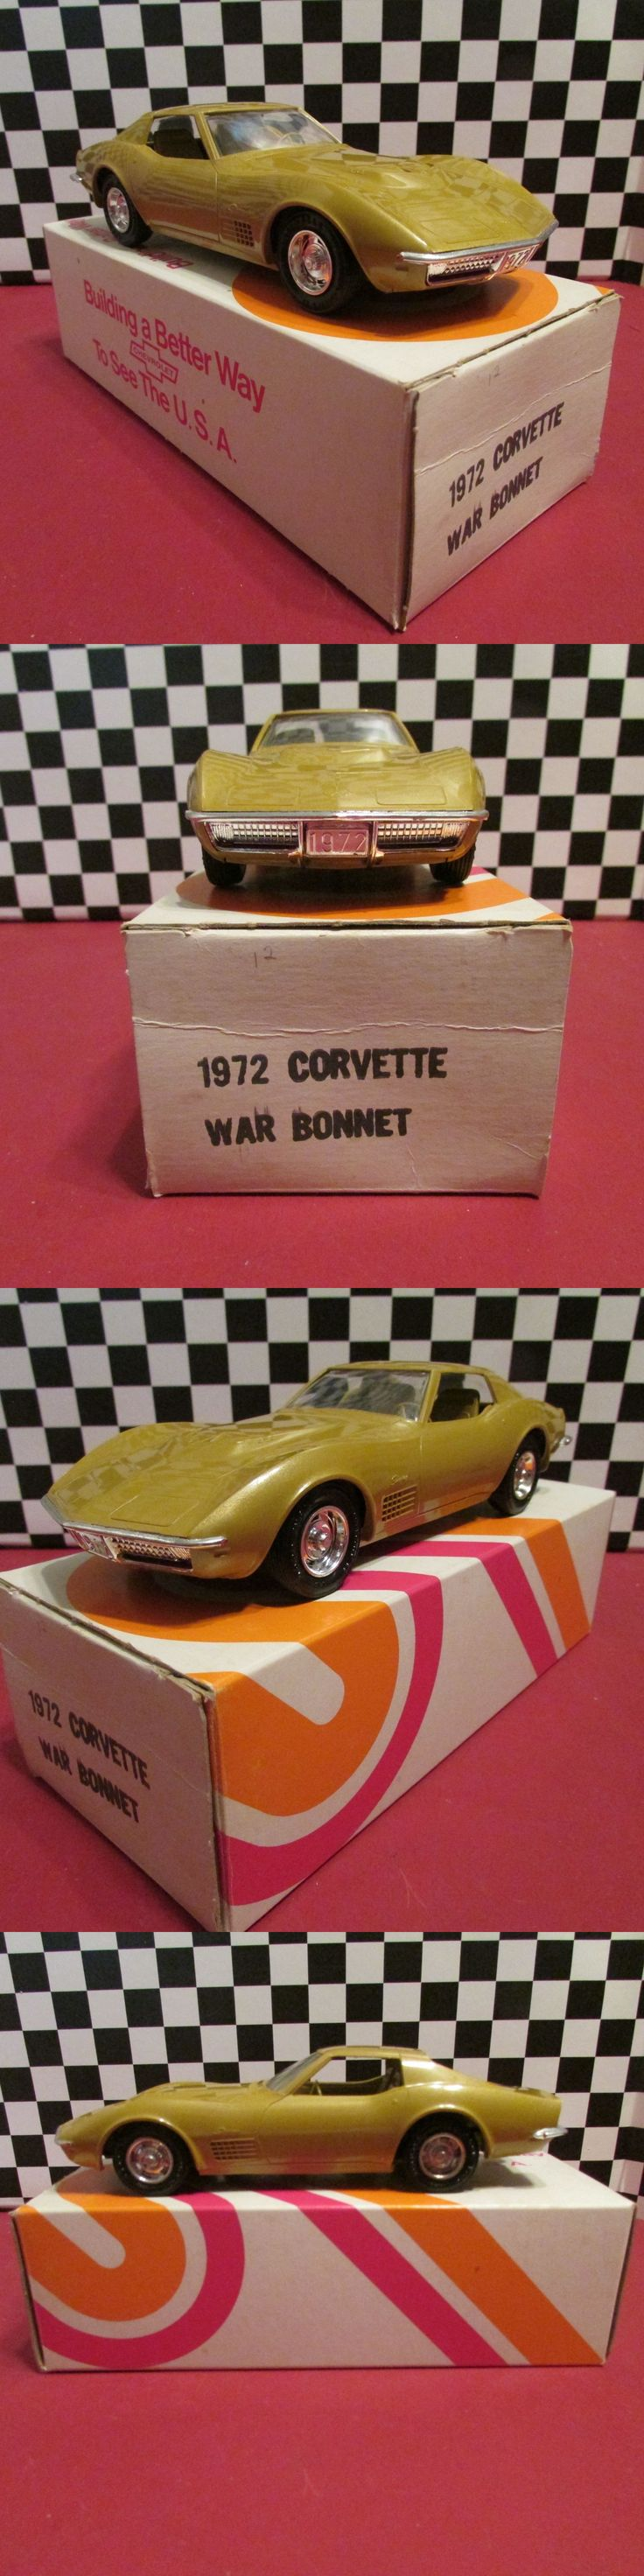 Fantastic free standing tree fort 401425 home design ideas - Promo 2592 1972 Chevrolet Corvette 1 25 Scale Dealership Promotional Model War